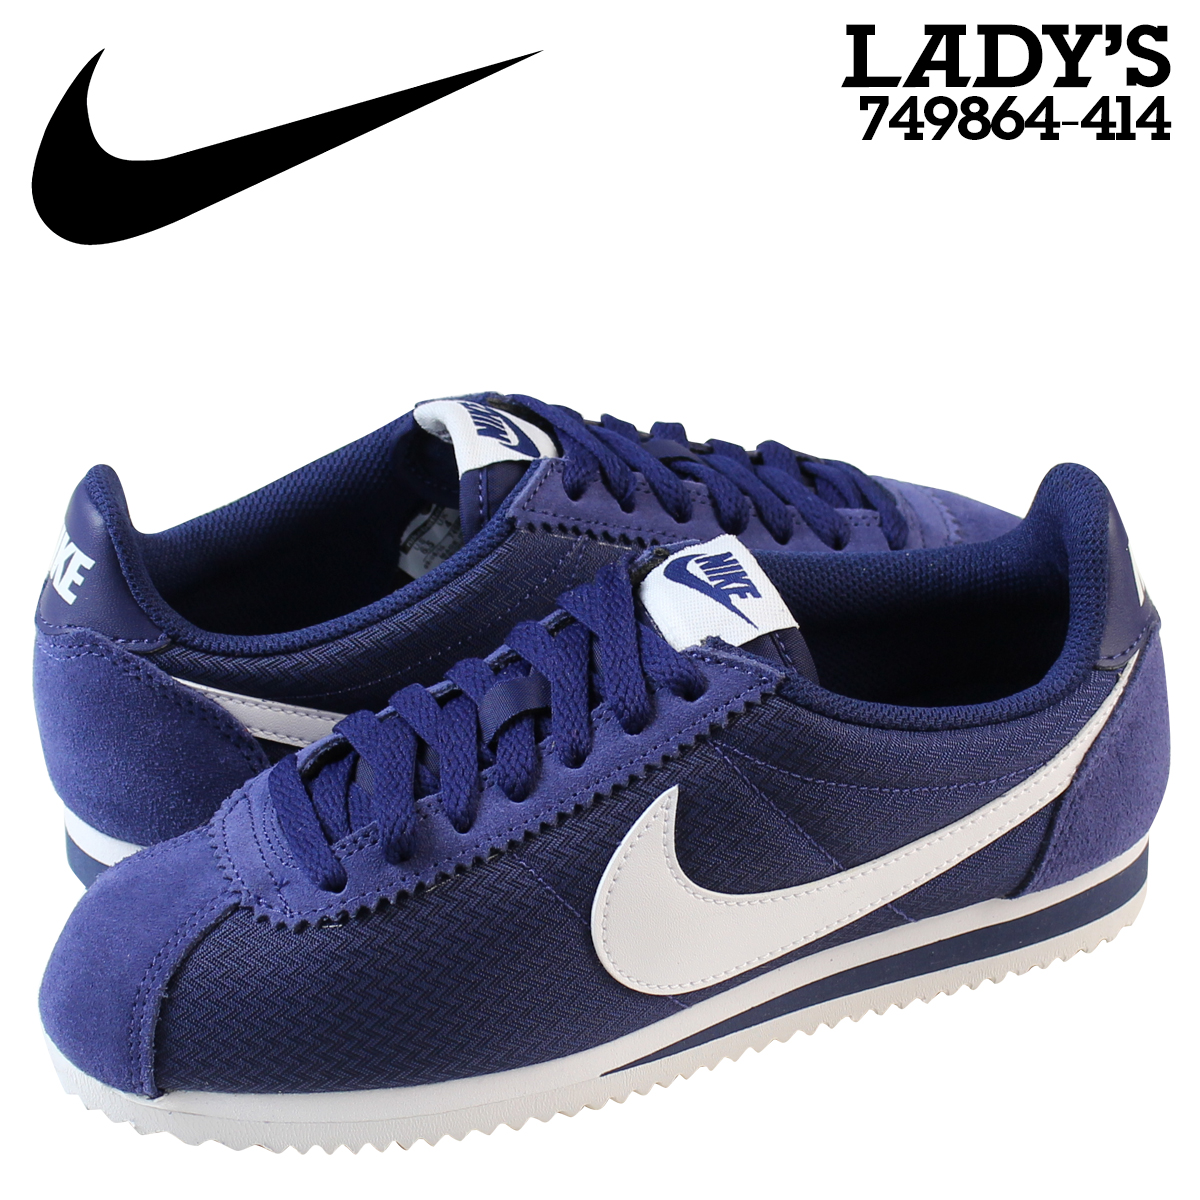 finest selection 11db8 cd29f ALLSPORTS Nike NIKE classic Cortez sneakers Womens WMNS CLASSIC CORTEZ  NYLON 749864-414 shoes blue  Rakuten Global Market